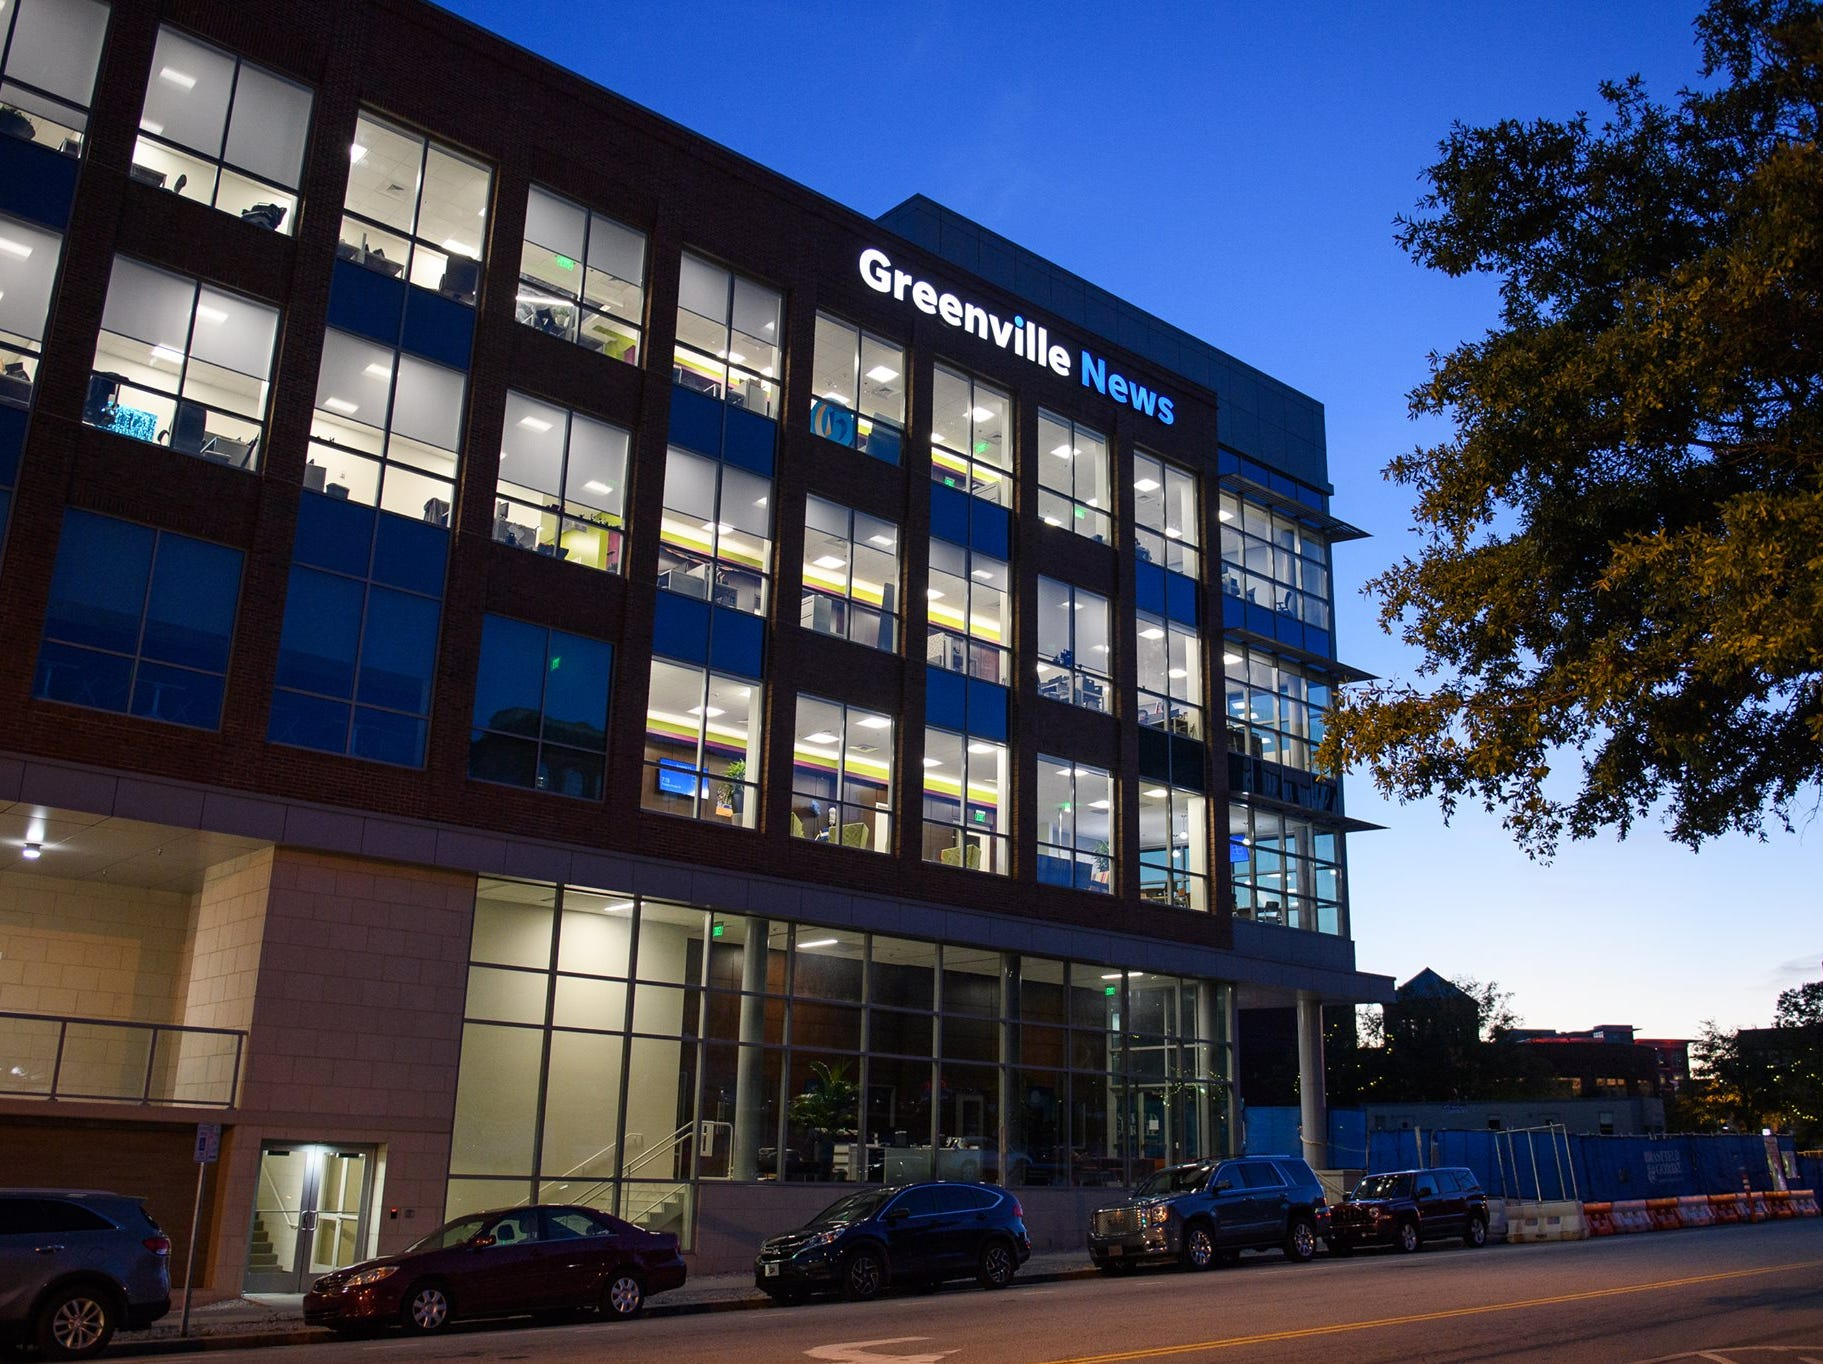 The Greenville News building on E Broad Street in downtown Greenville, Thursday, Oct 18, 2018.